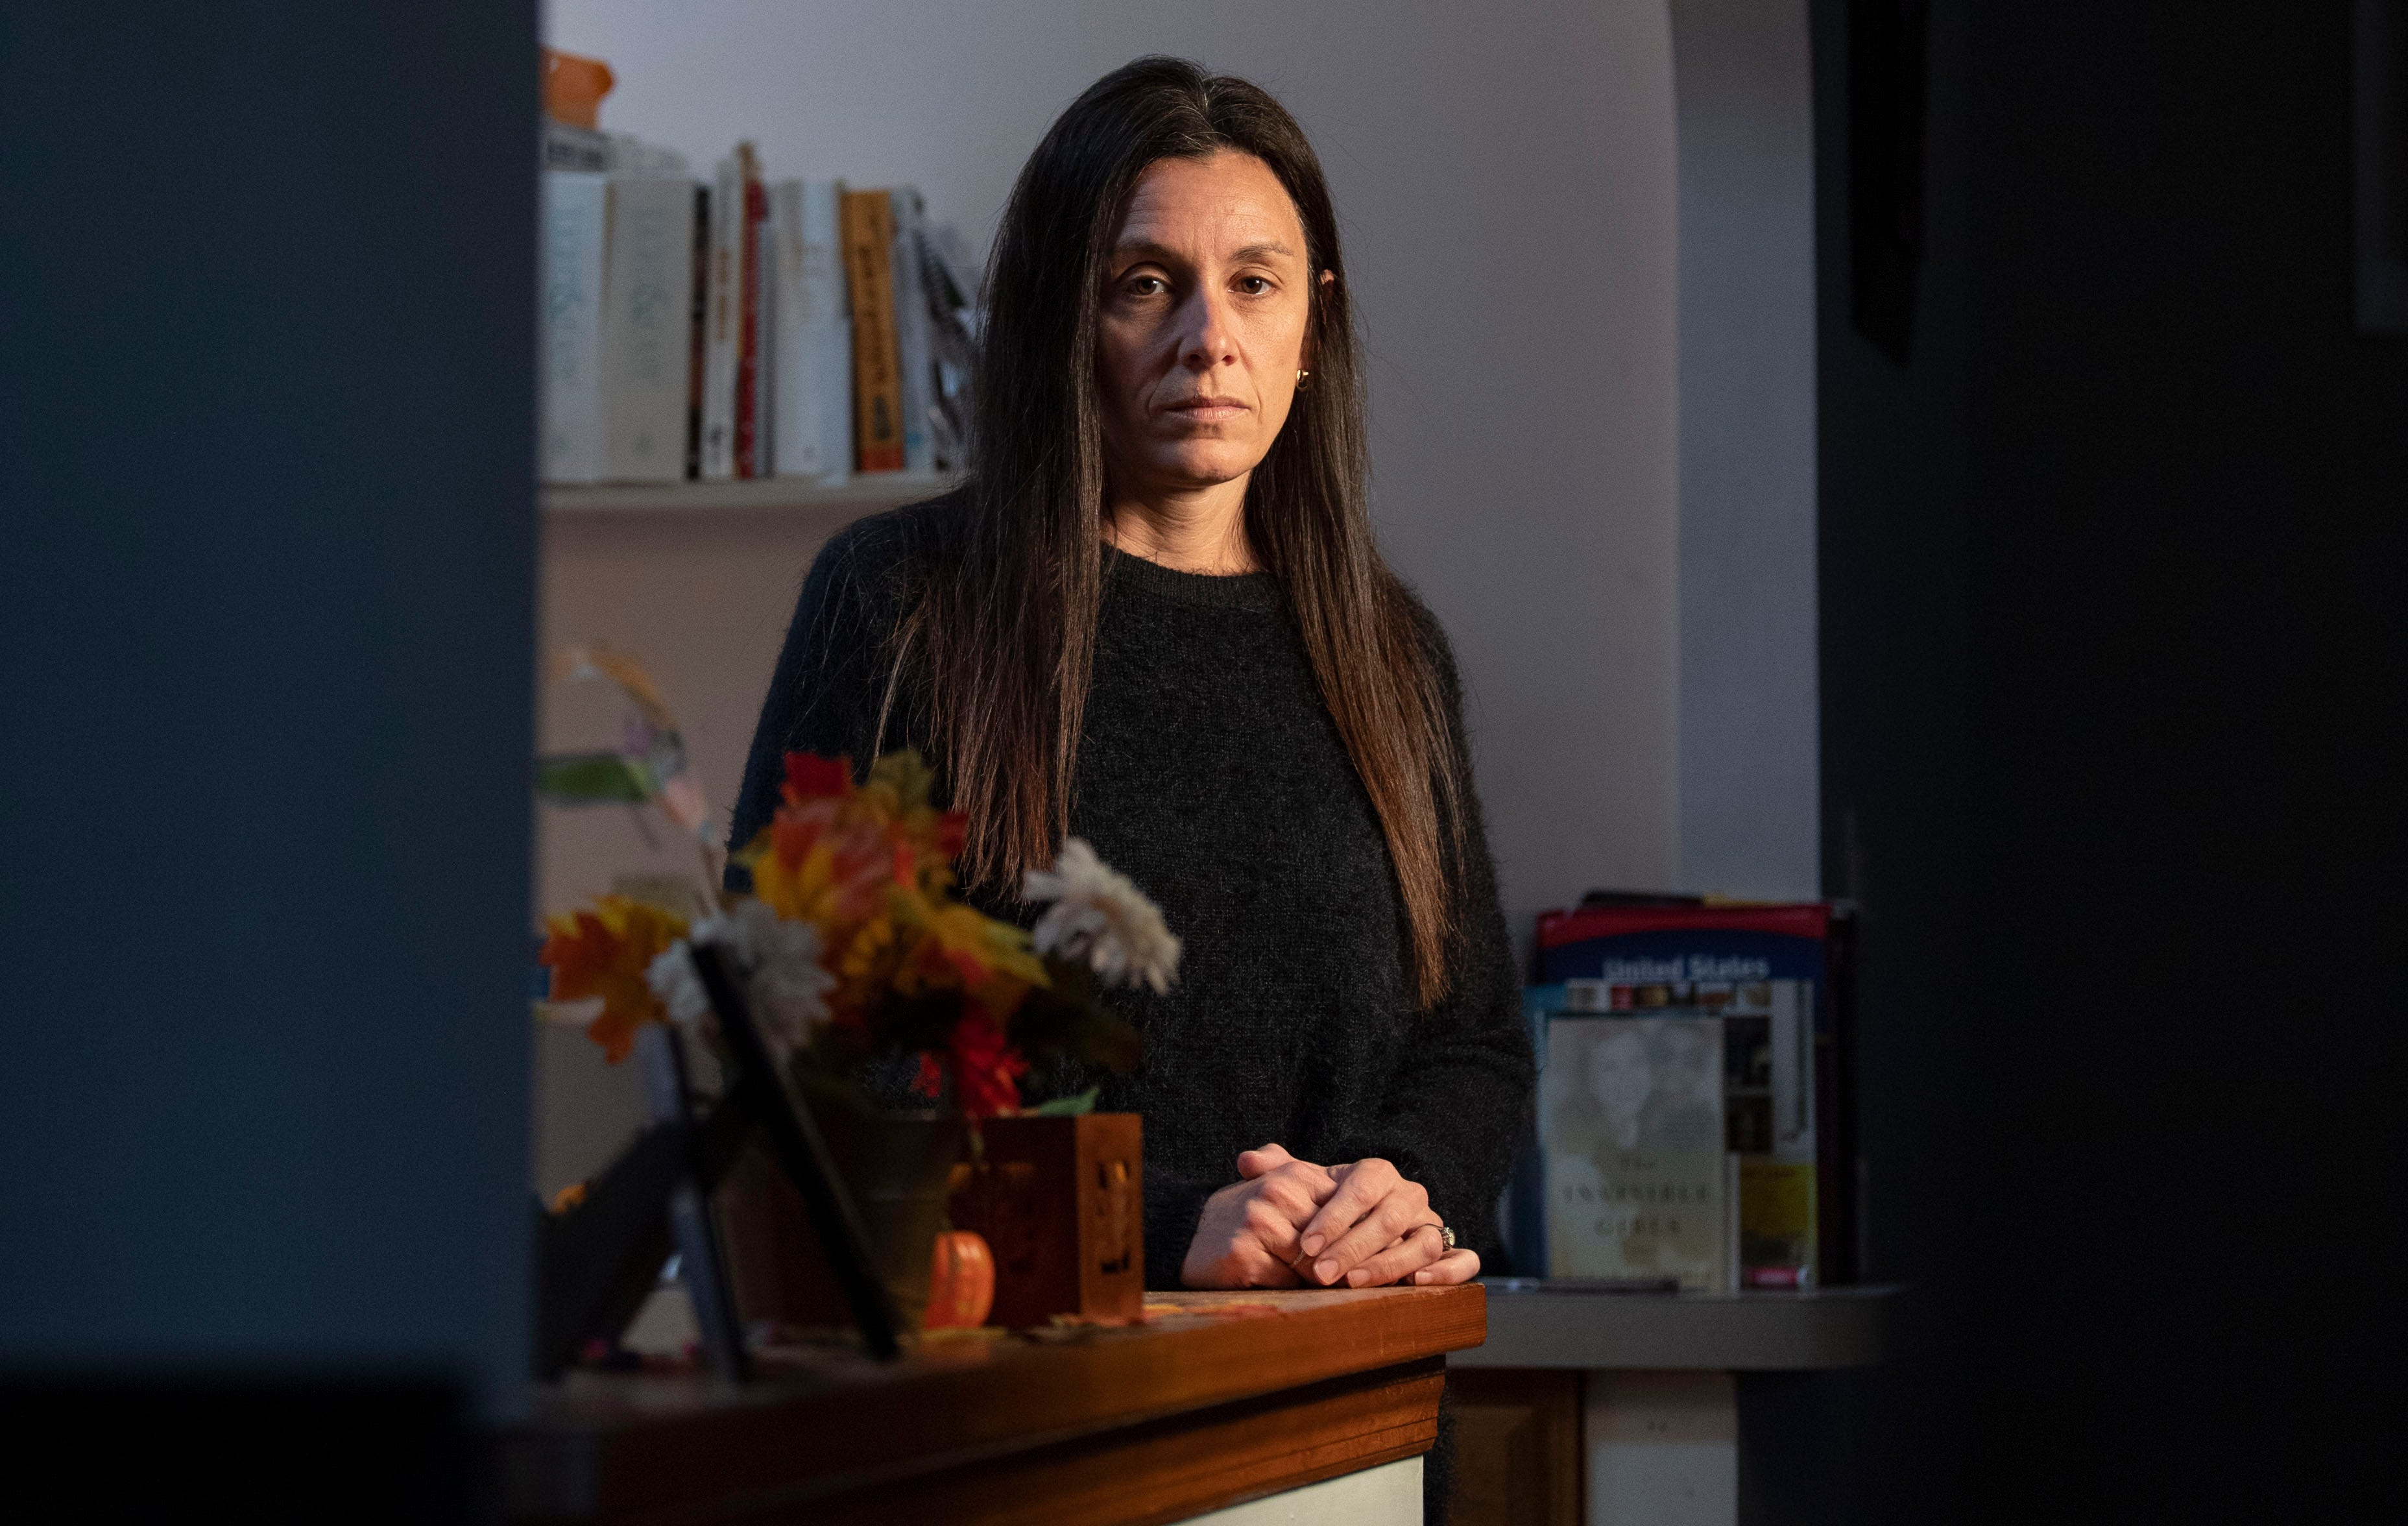 Michele Dinko, now 45, was 12 when she said Leonard Forte repeatedly raped her. She has waited nearly three-quarters of her life for him to appear in a Vermont courtroom.